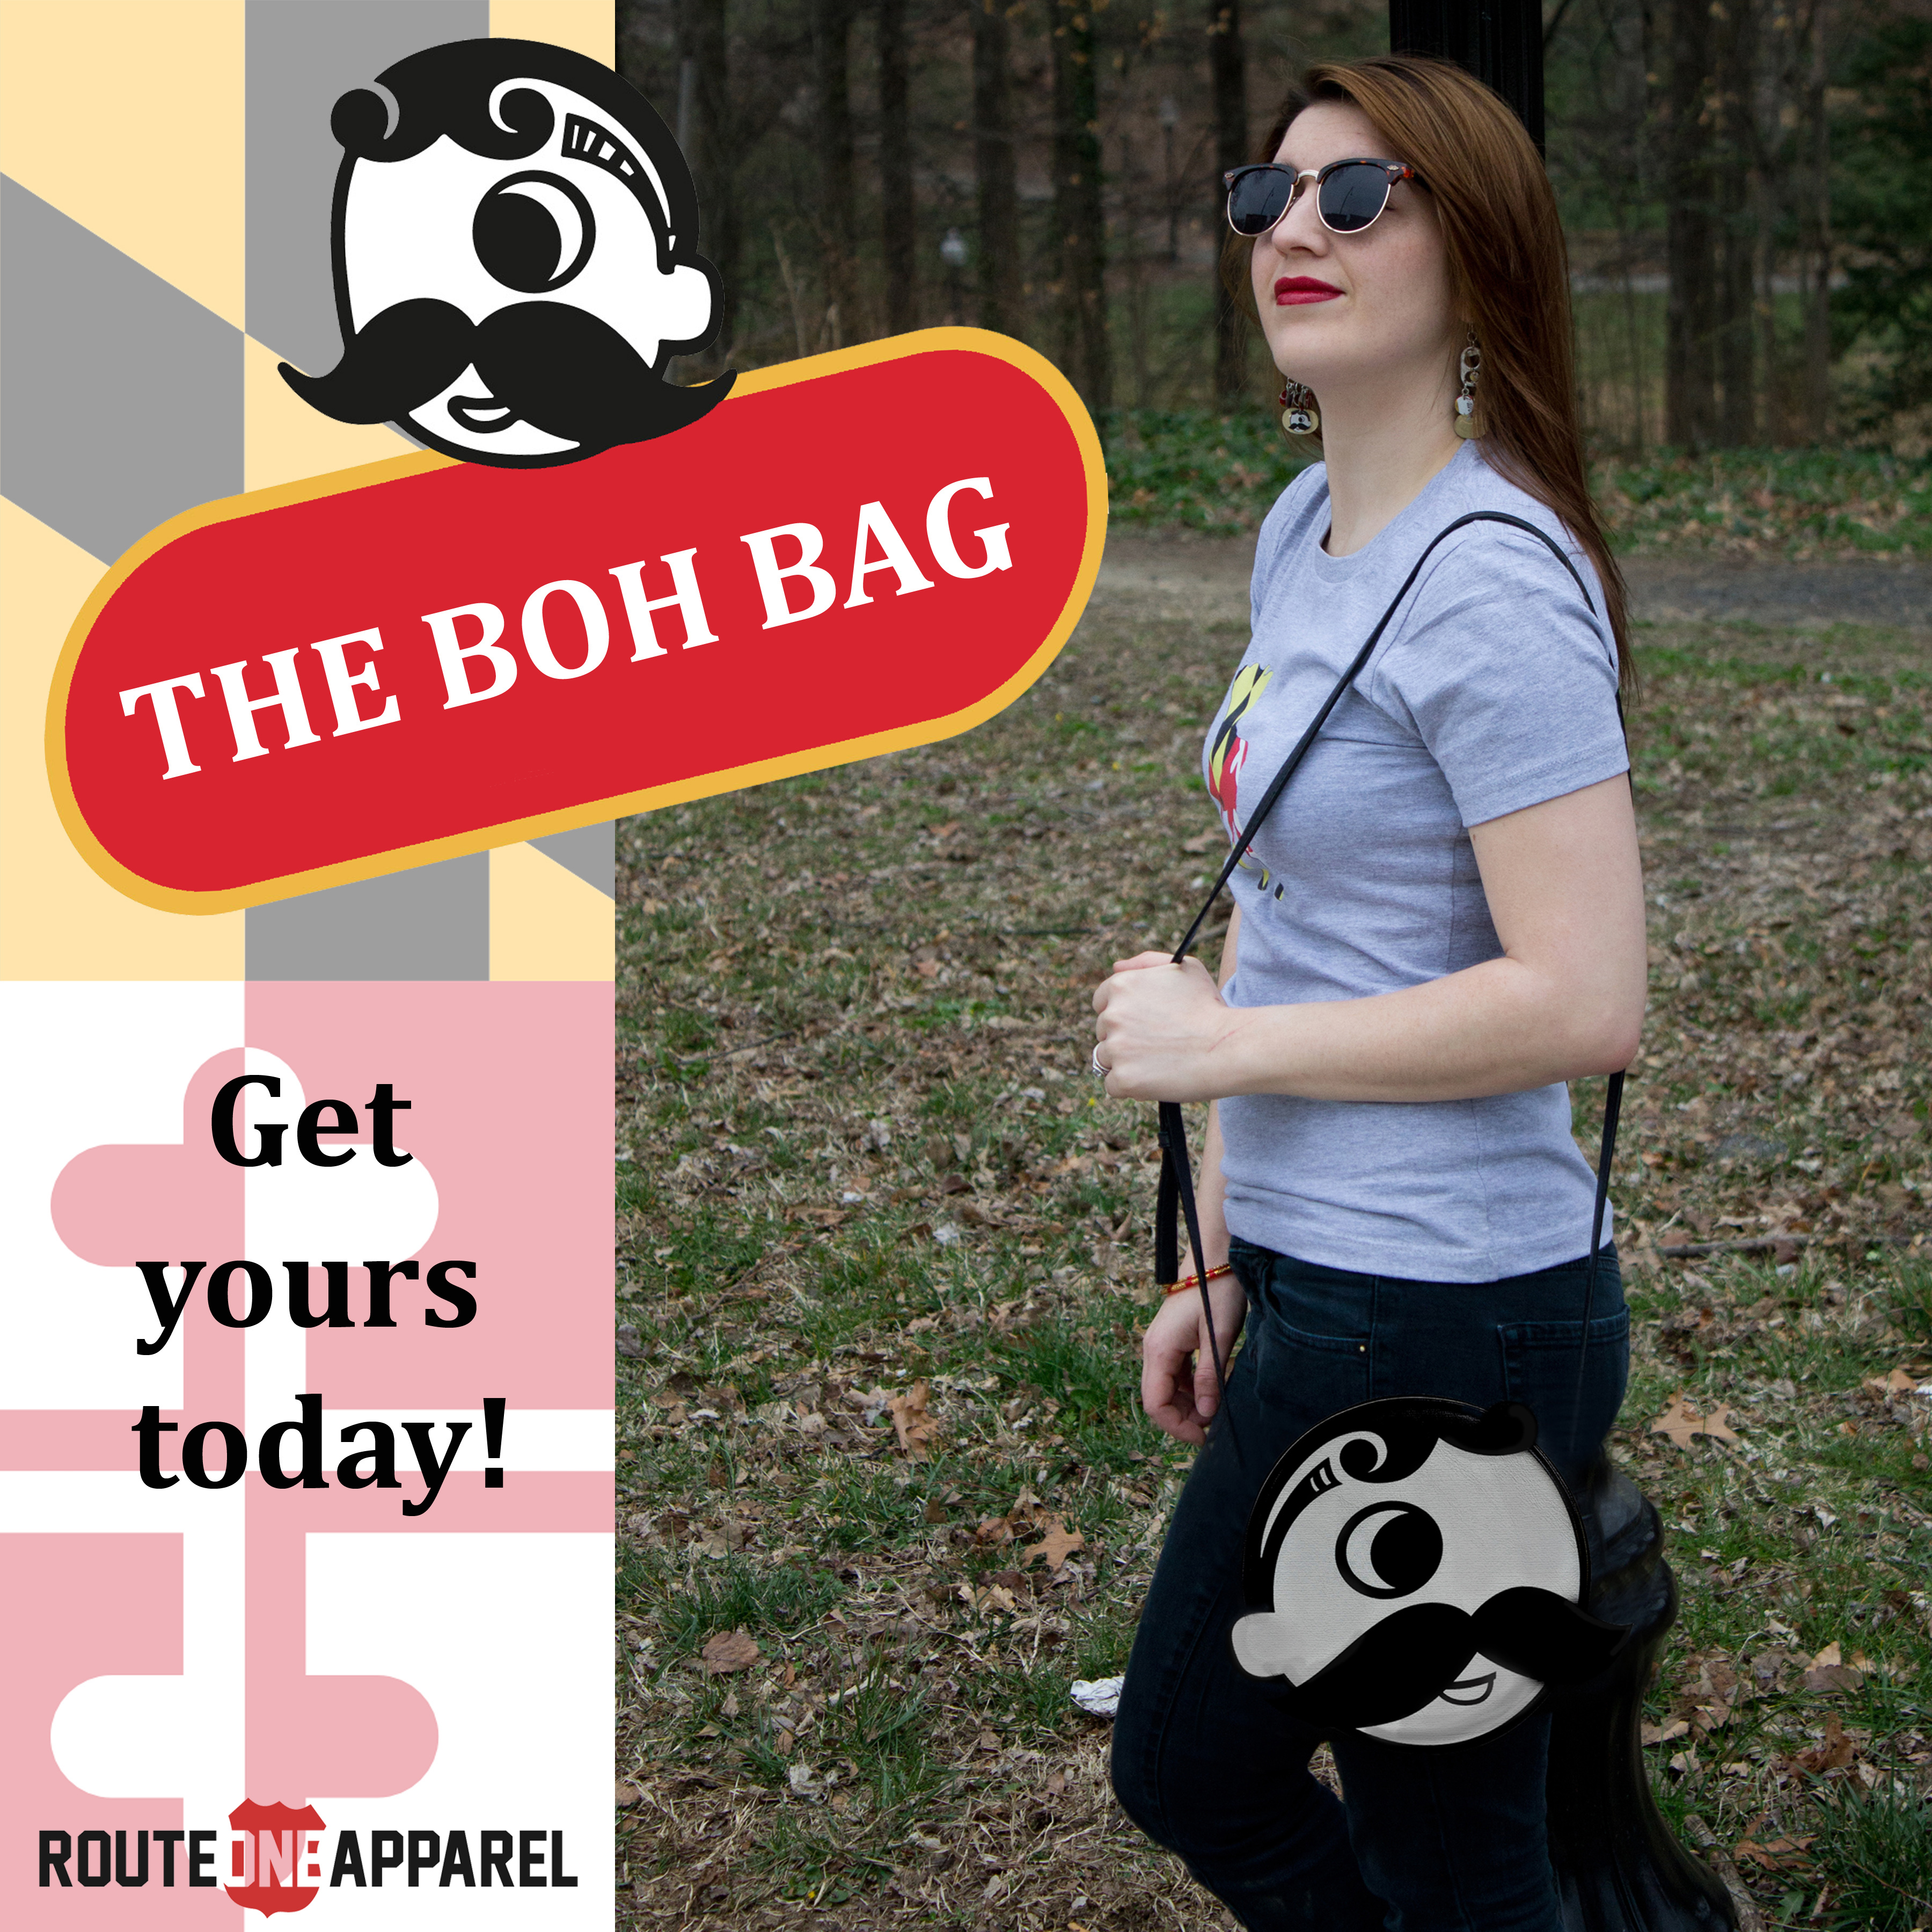 The Boh Bag_New Product Ad